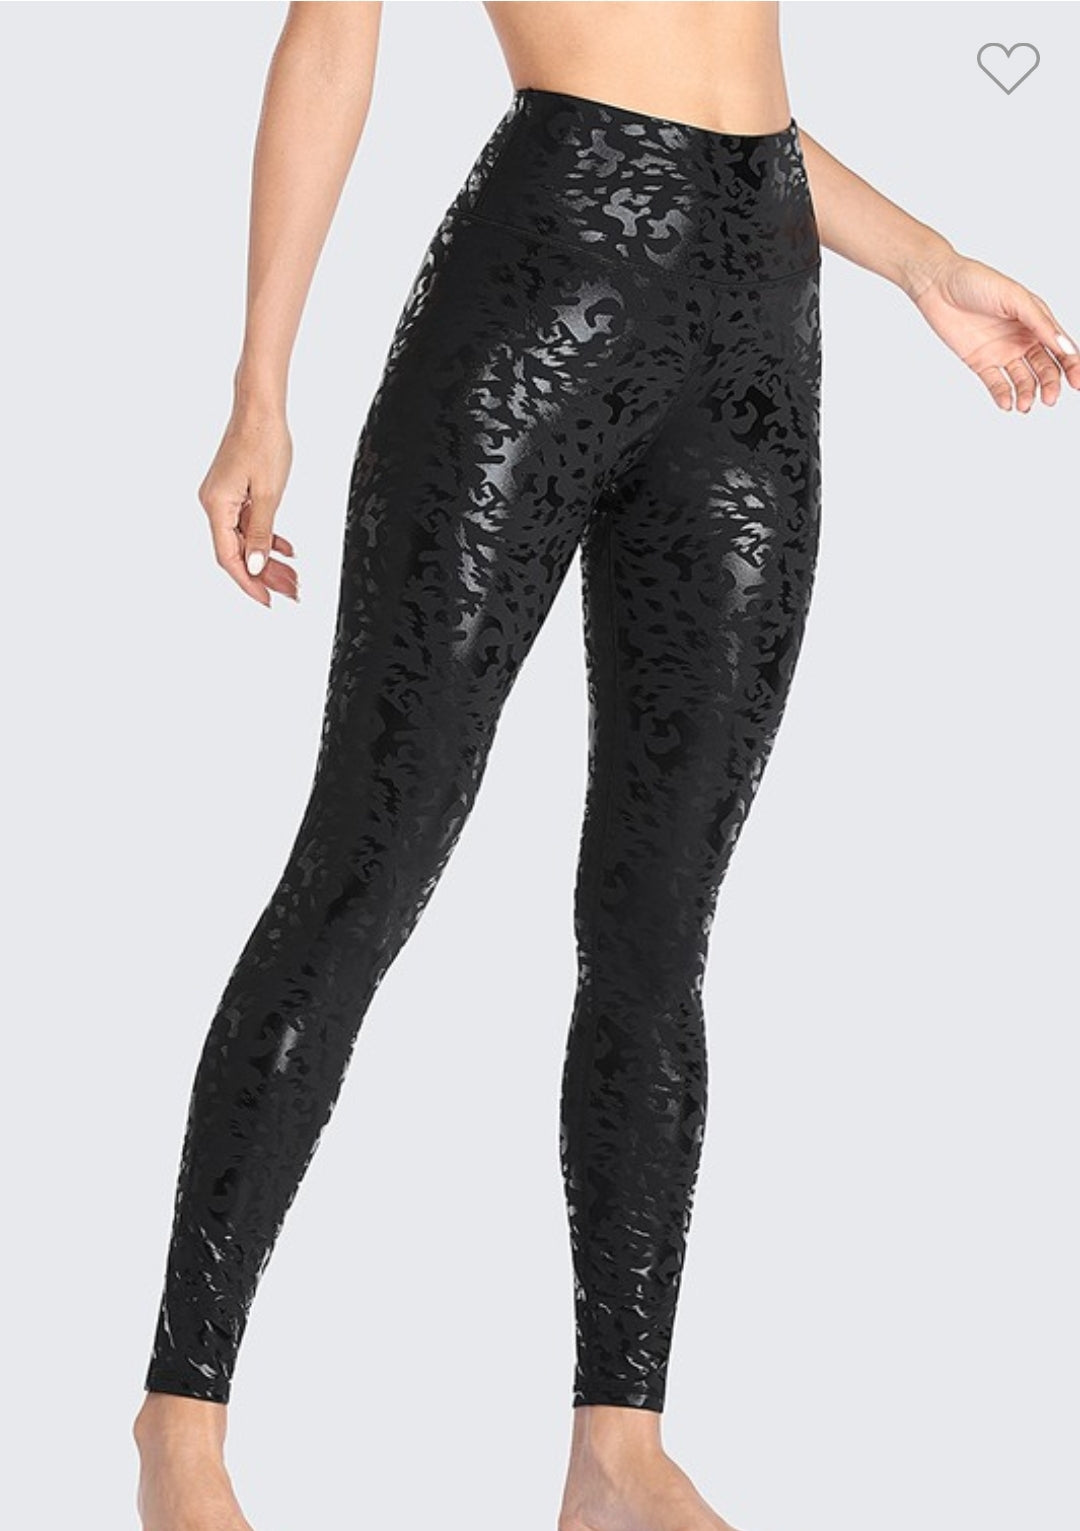 Black Leopard Liquid Yoga Leggings - Rawr